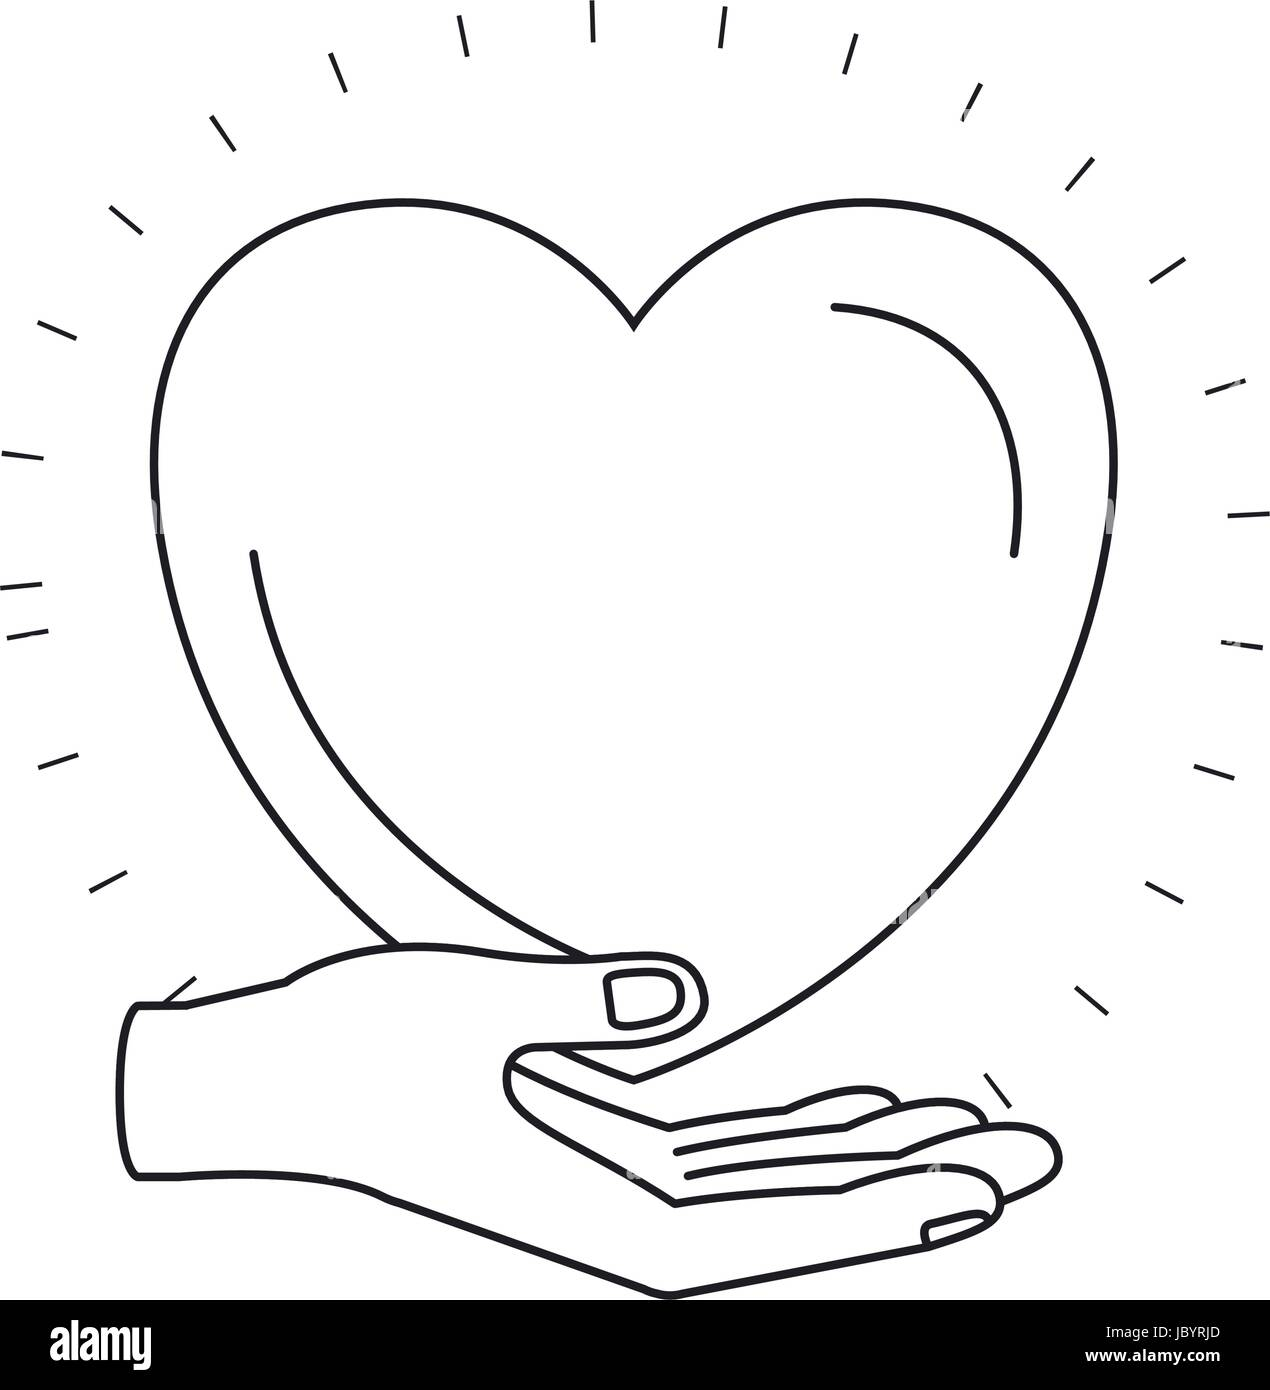 Silhouette Hand Palm Giving A Heart Charity Symbol Stock Vector Art